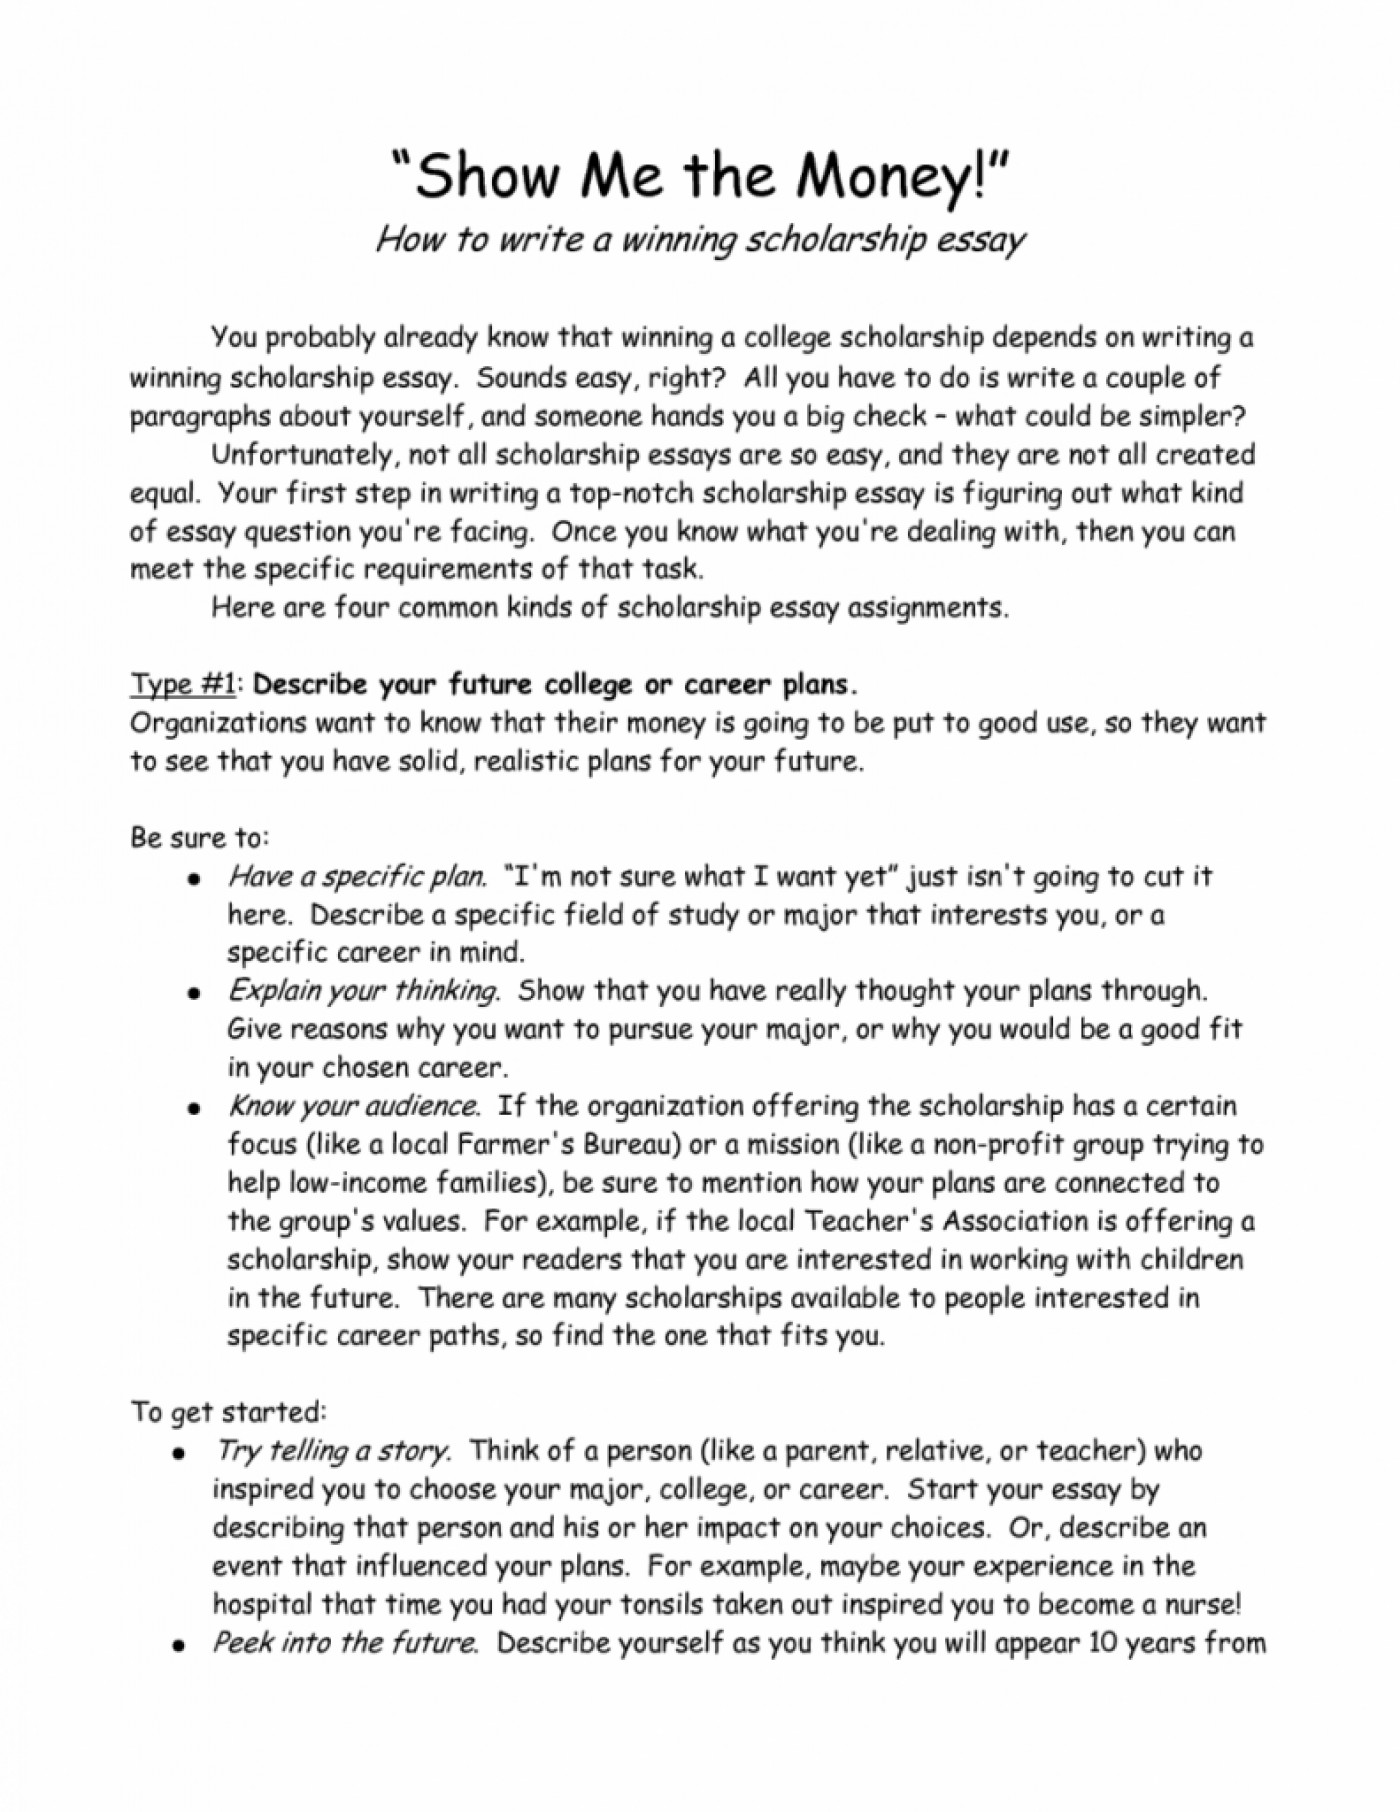 014 Travel Essay Example On Travelling The School Bus Examples How To Write Business Cover Letter Experience Sample Tagalog Journal Time Writing Photo Pdf Unique Definition Submissions 1400